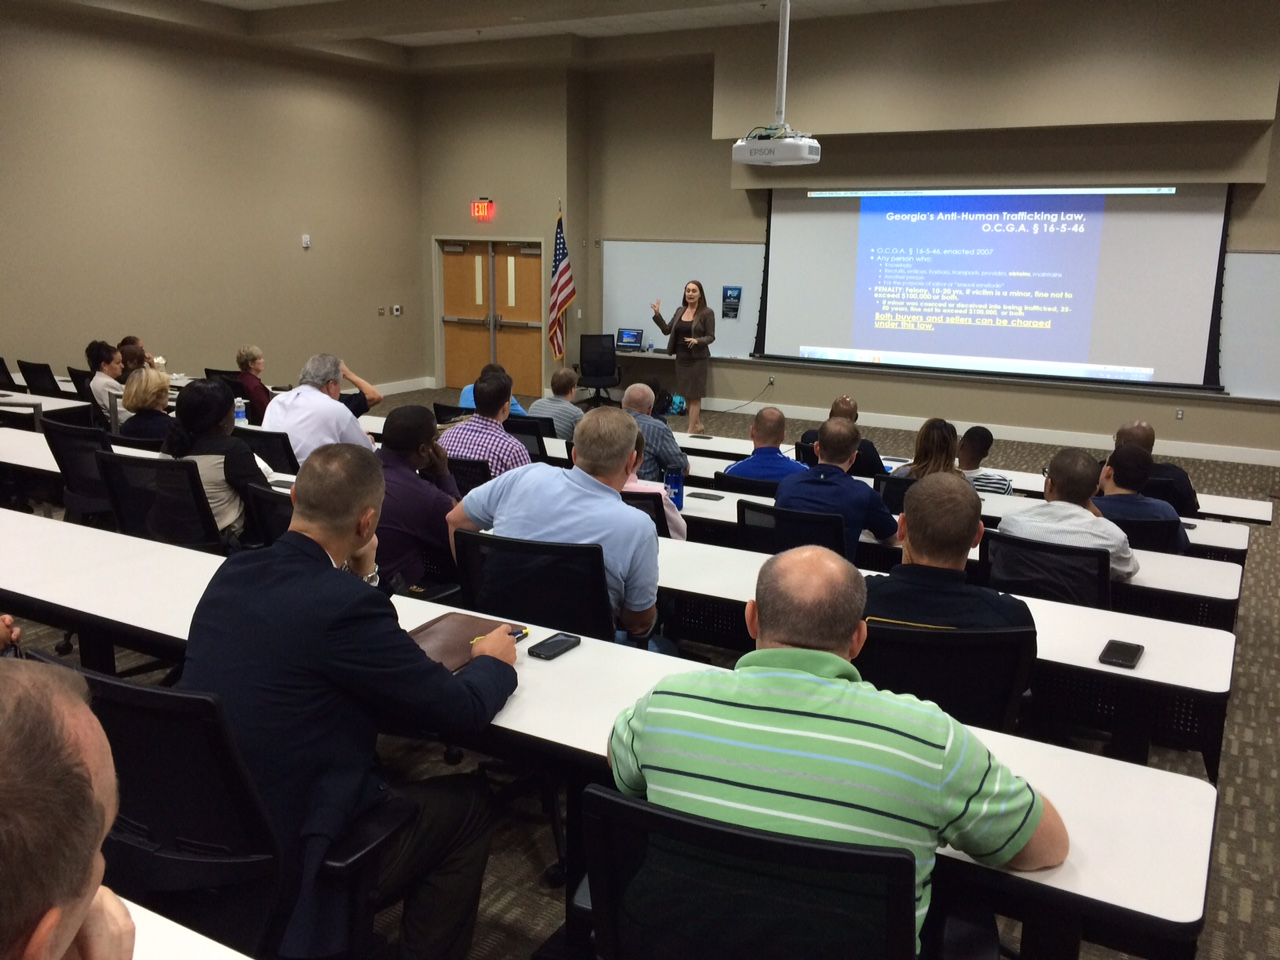 Sex trafficking training for police officers